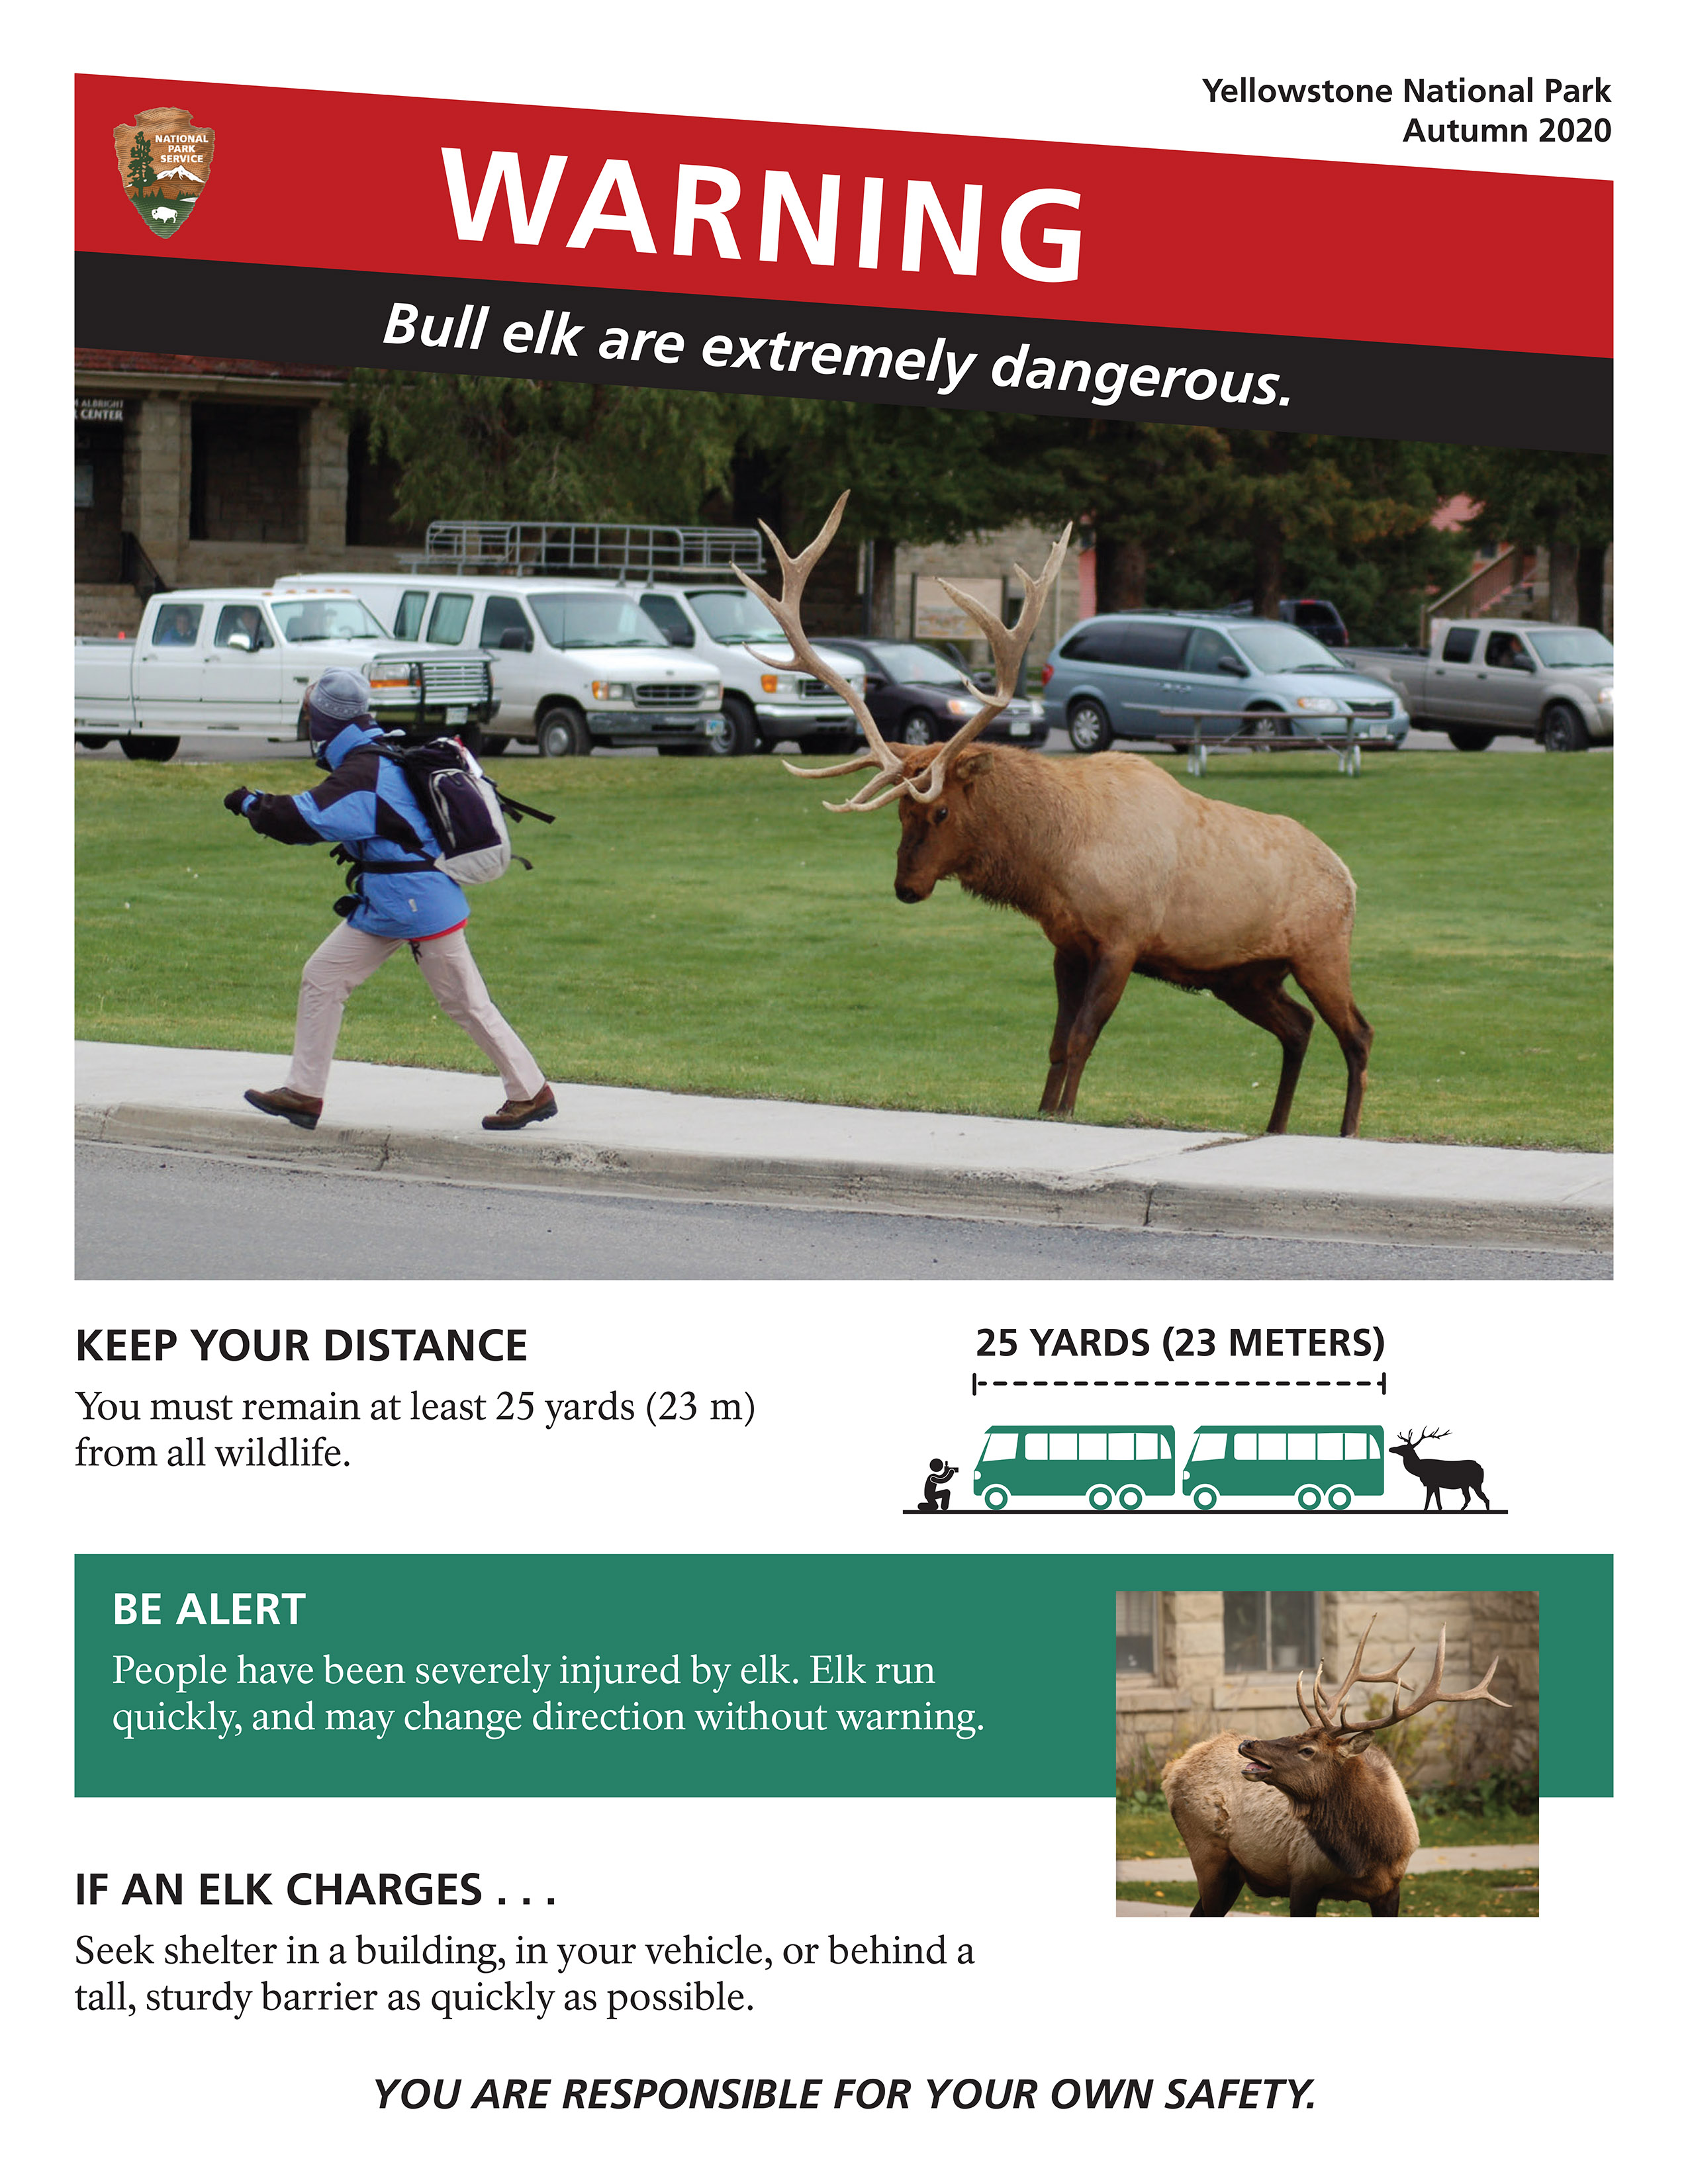 A poster visualizing how elk can chase people and the distance one should keep from elk